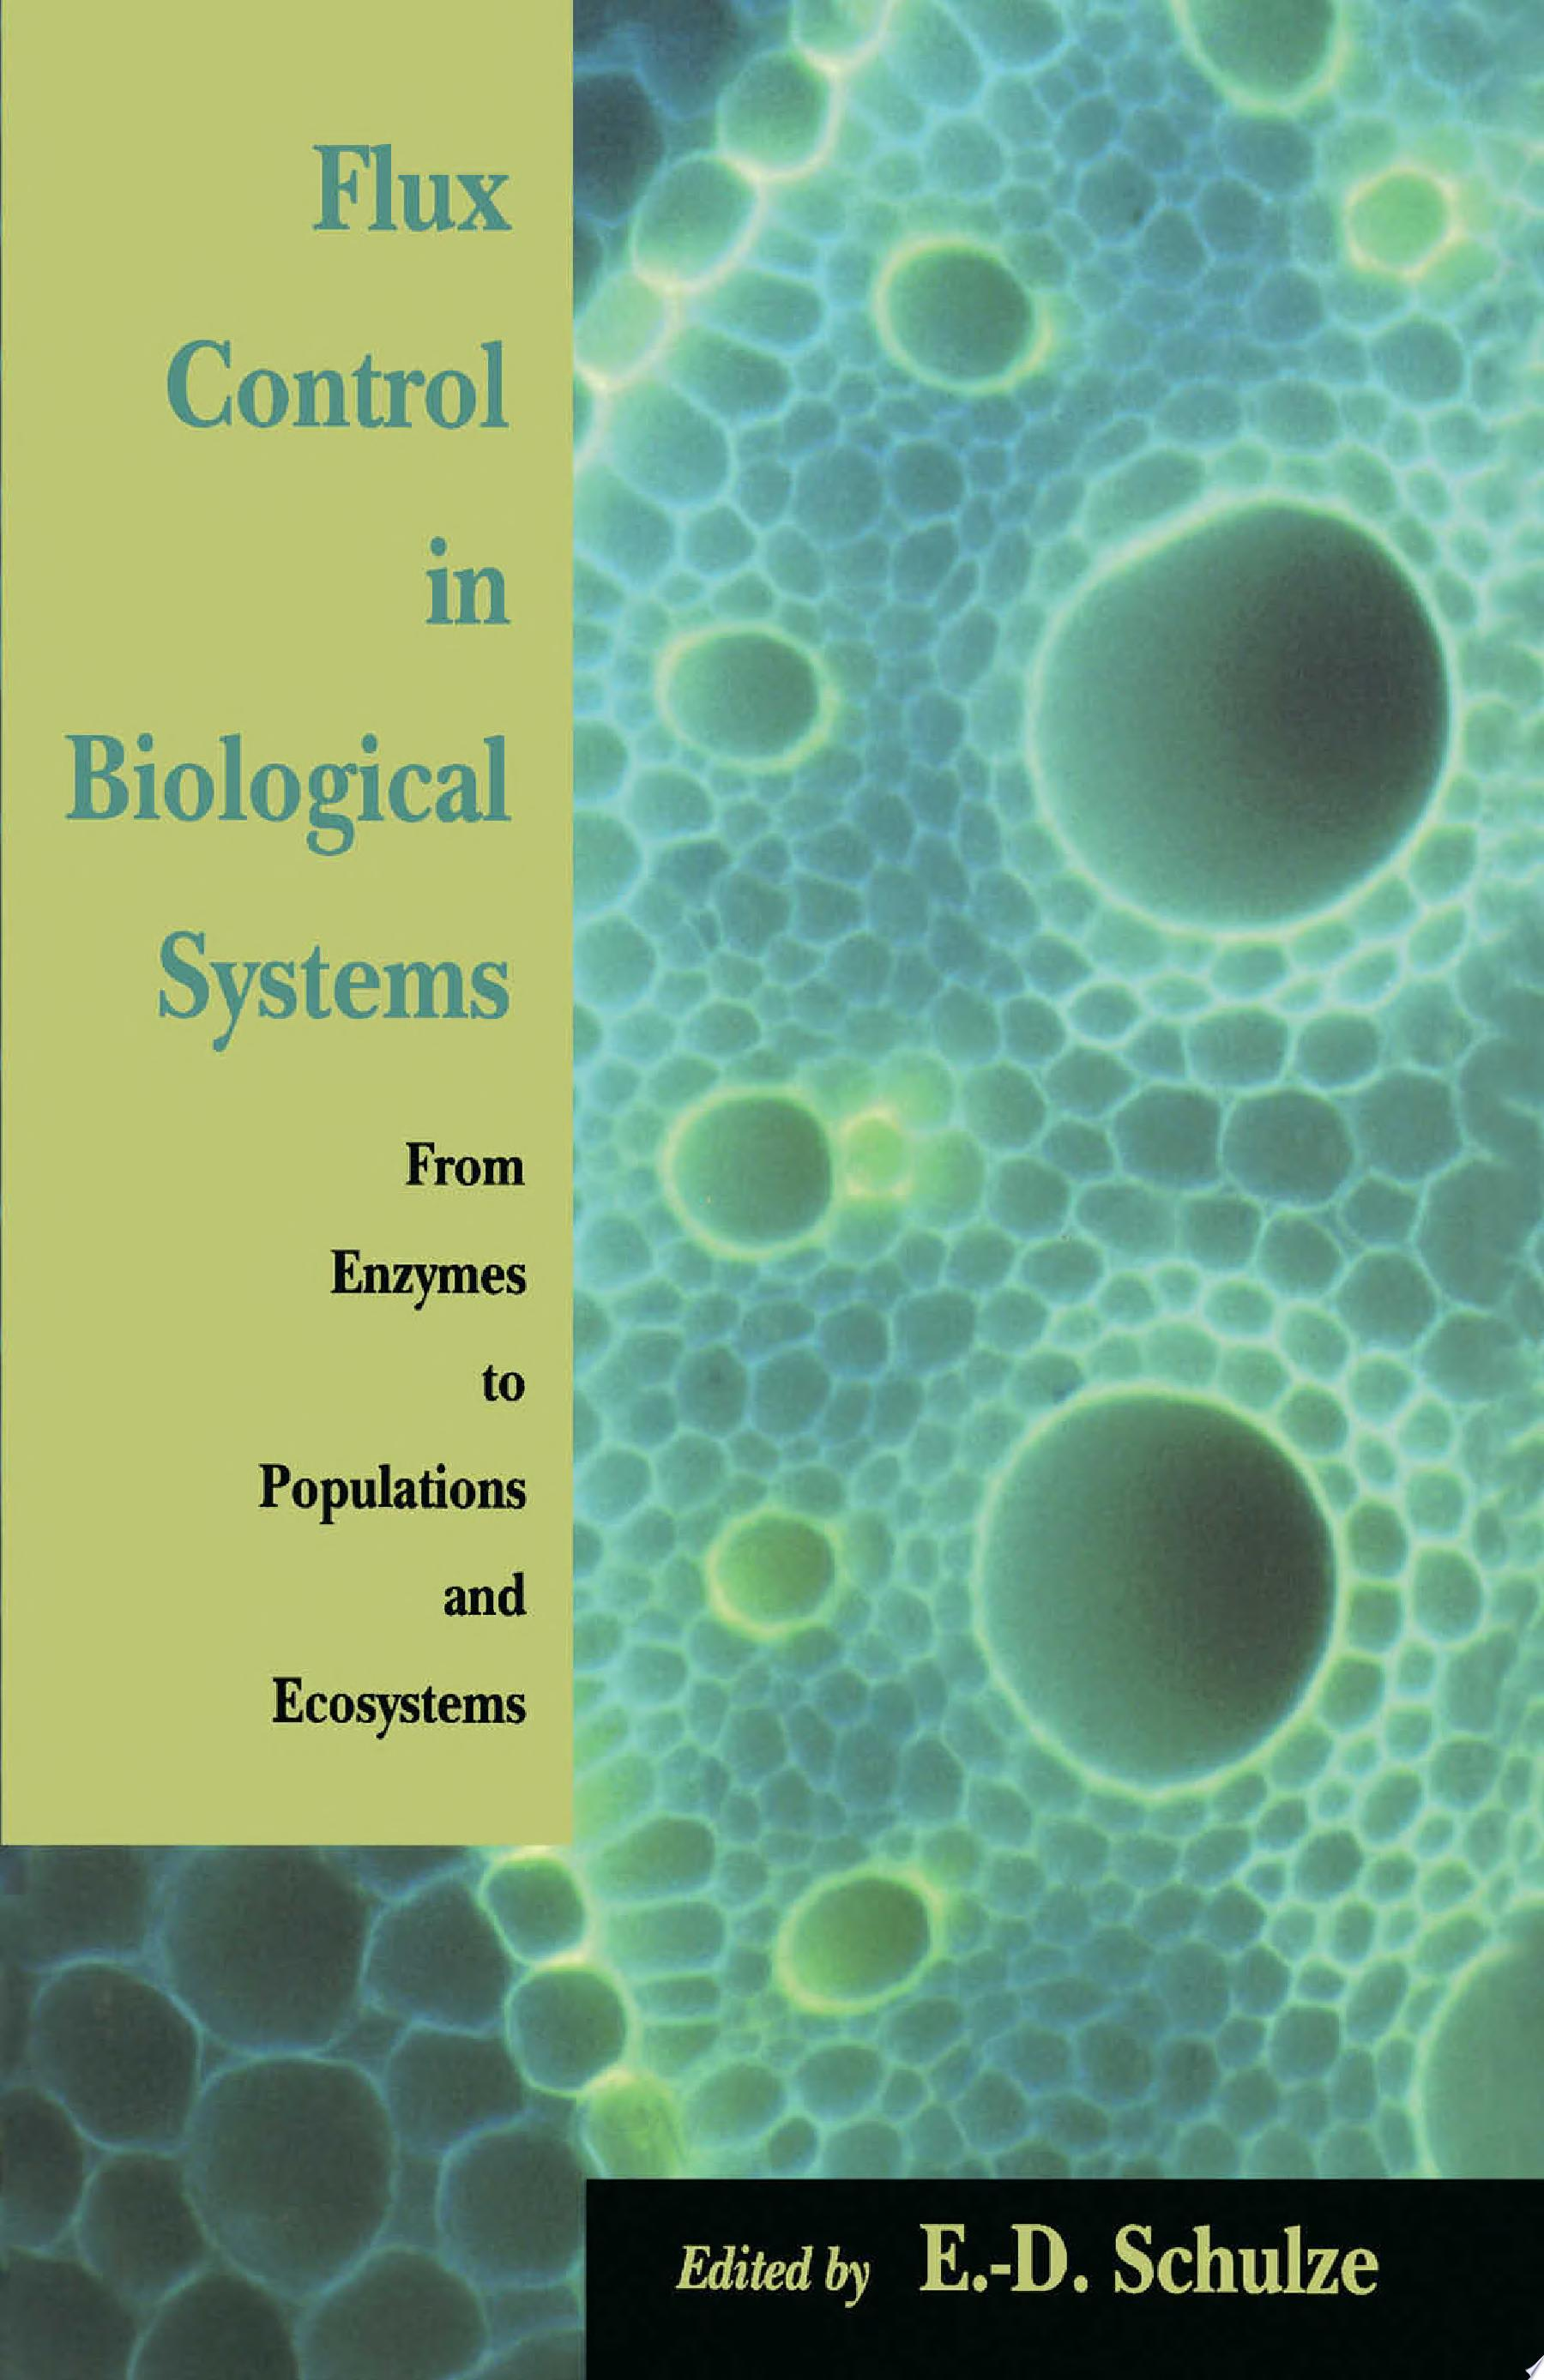 Flux Control in Biological Systems